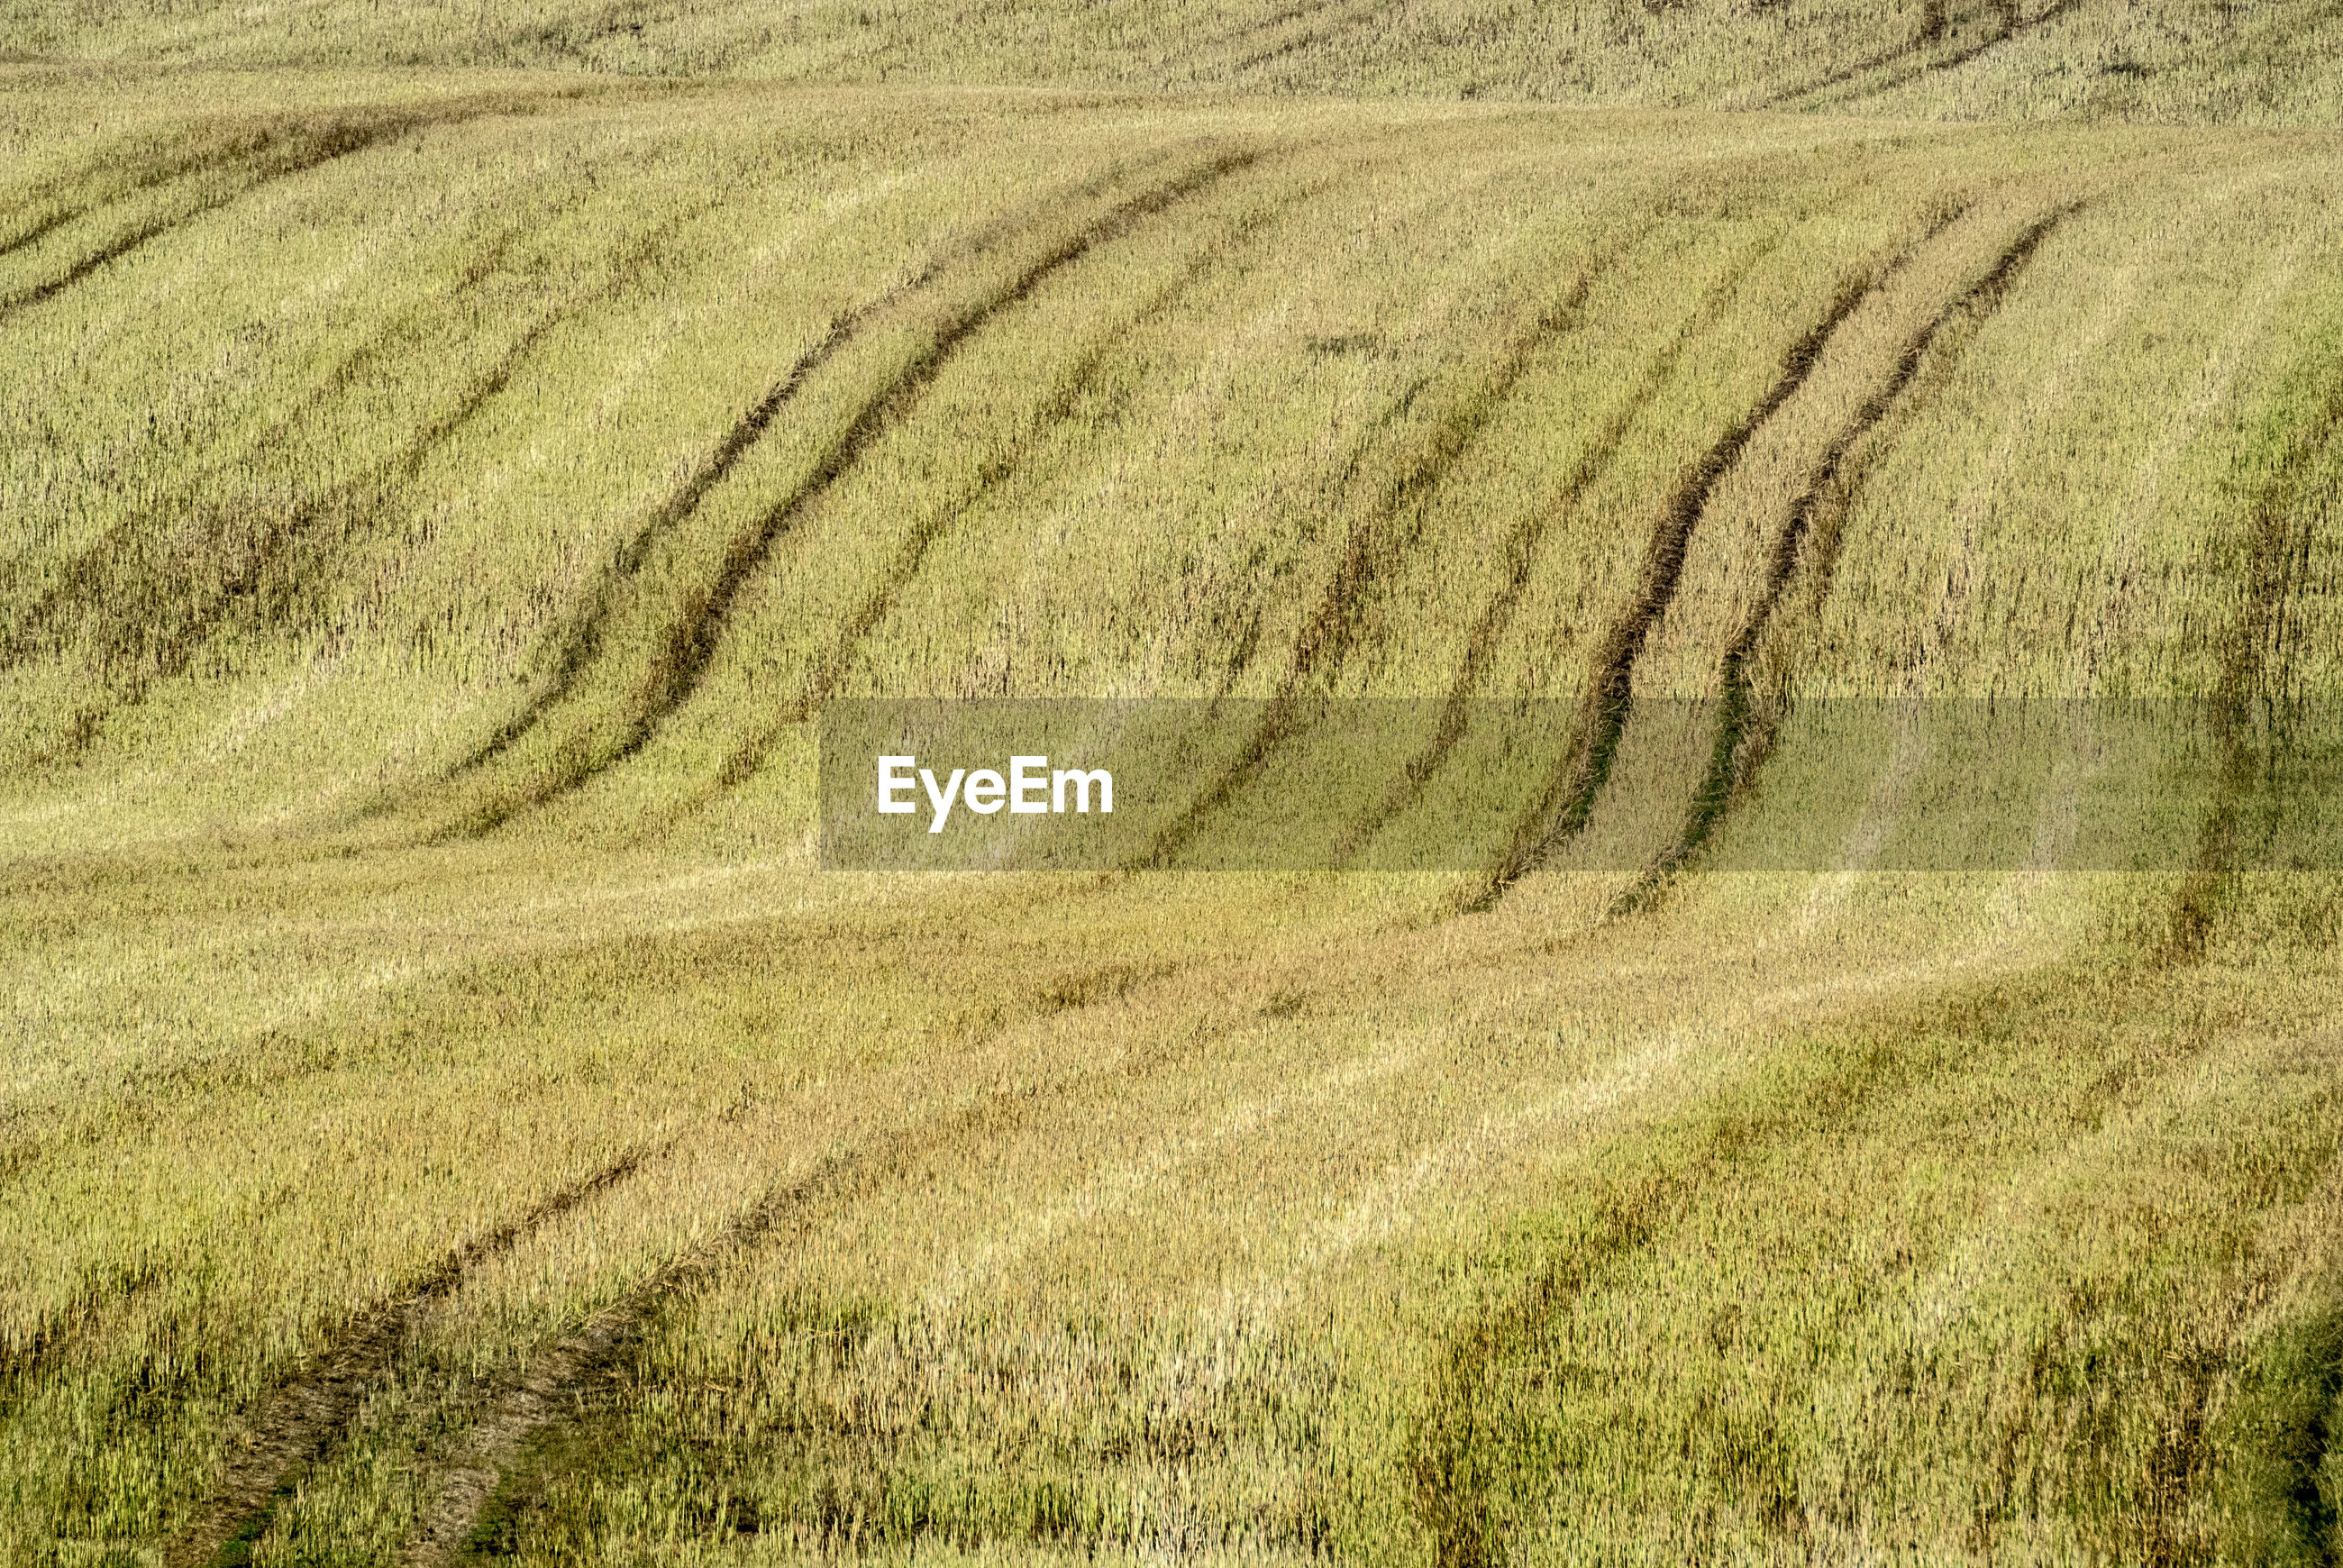 HIGH ANGLE VIEW OF FARM FIELD